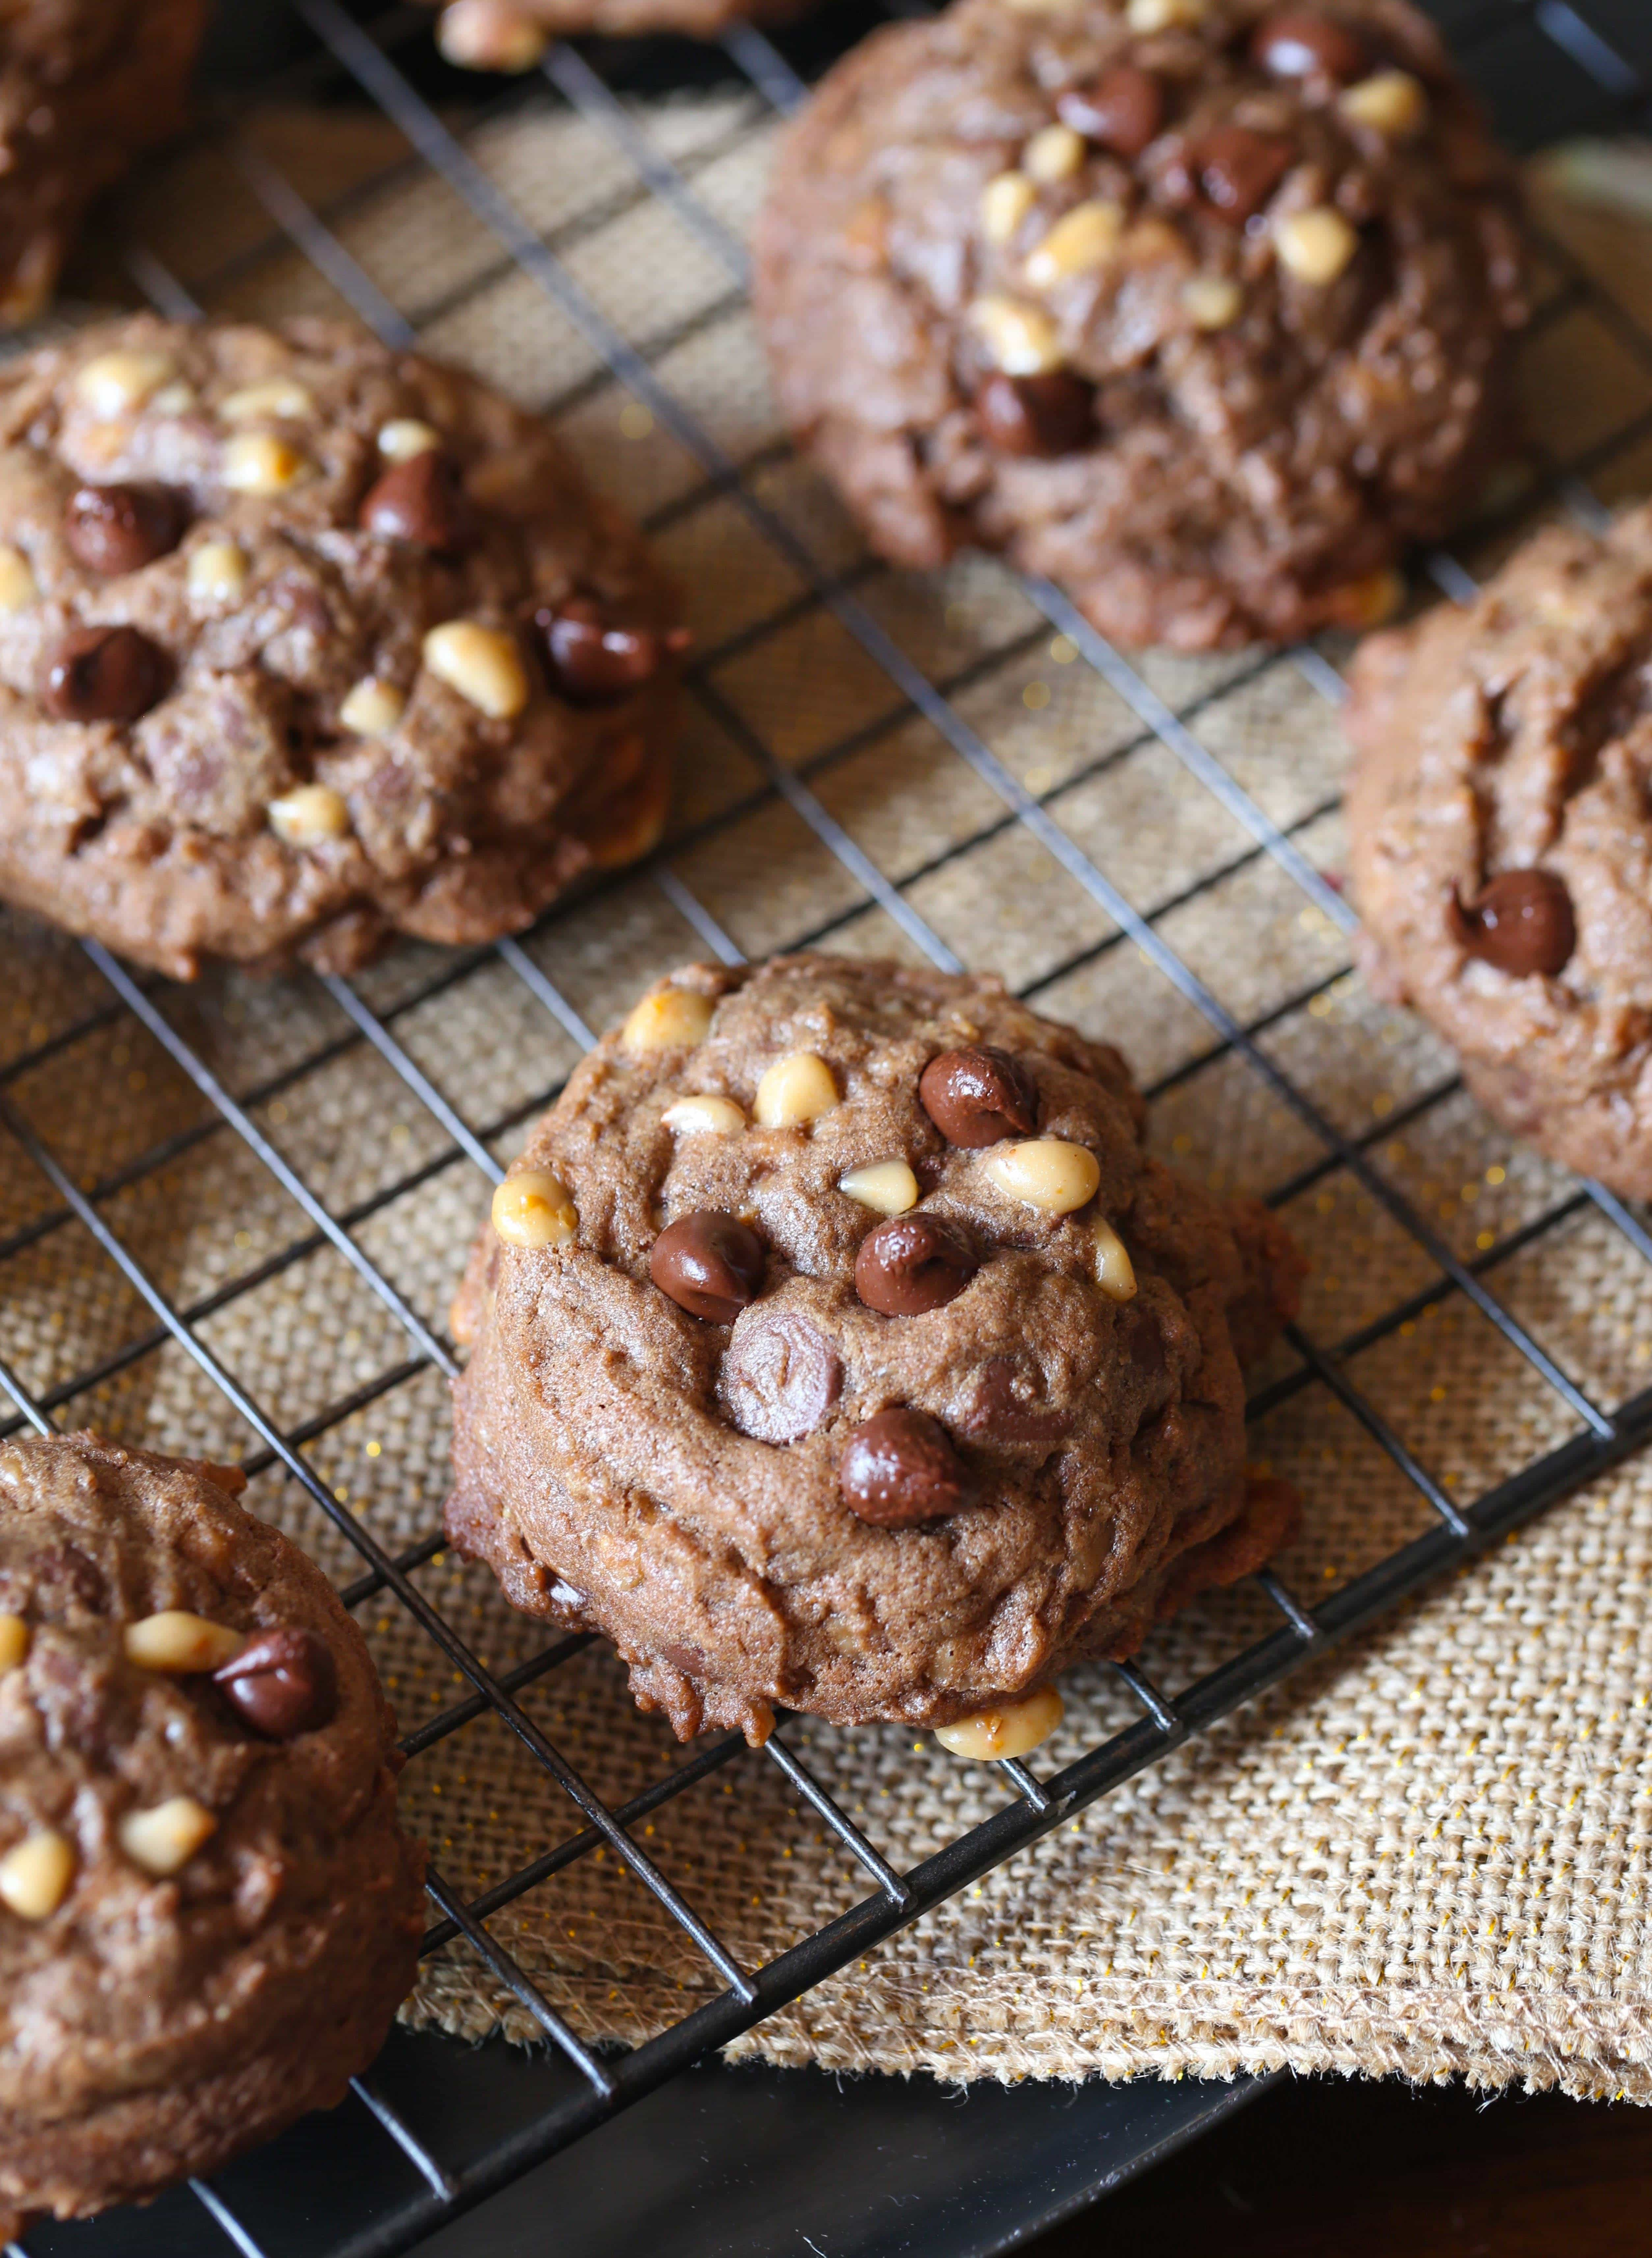 These Chocolate Toffee Cookies are thick, chocolaty and full of chocolate chips and toffee bits! The inside texture is like a brownie! So GOOD!